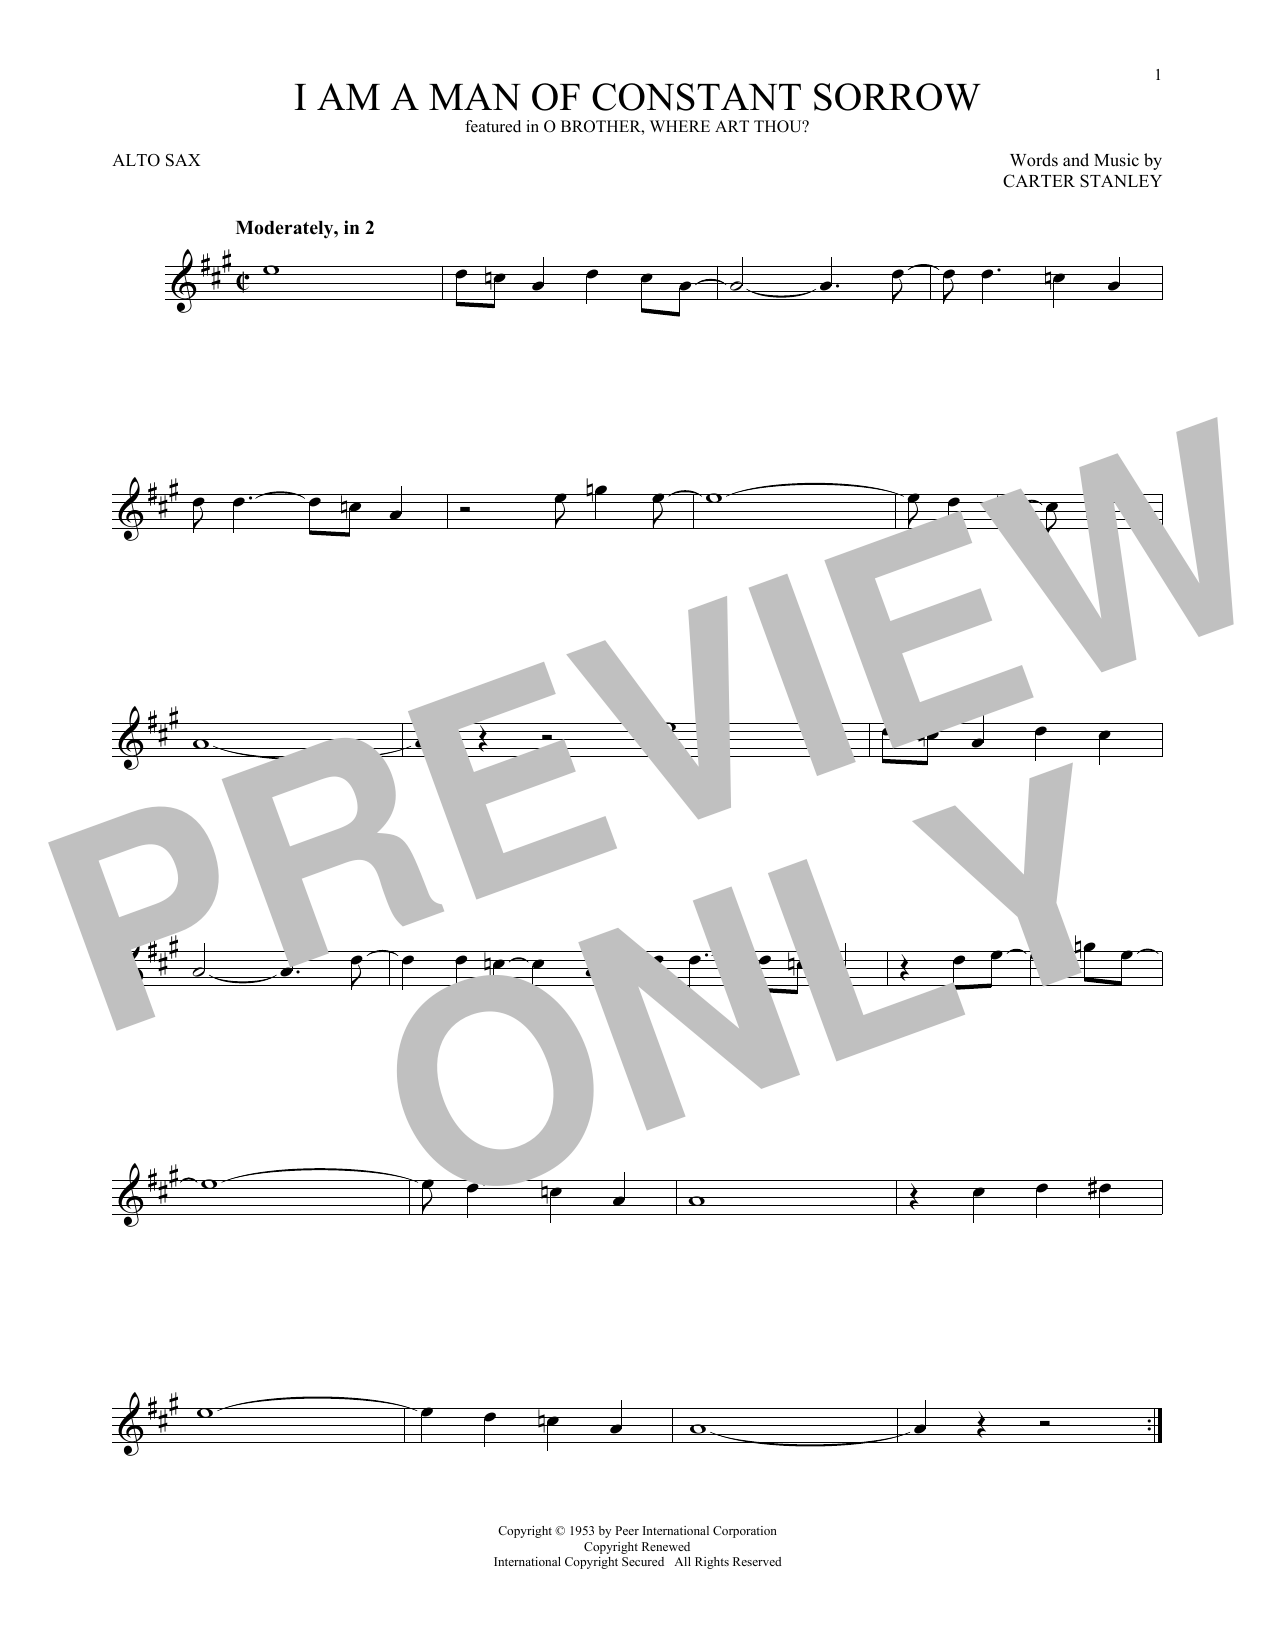 Carter Stanley I Am A Man Of Constant Sorrow Sheet Music Notes